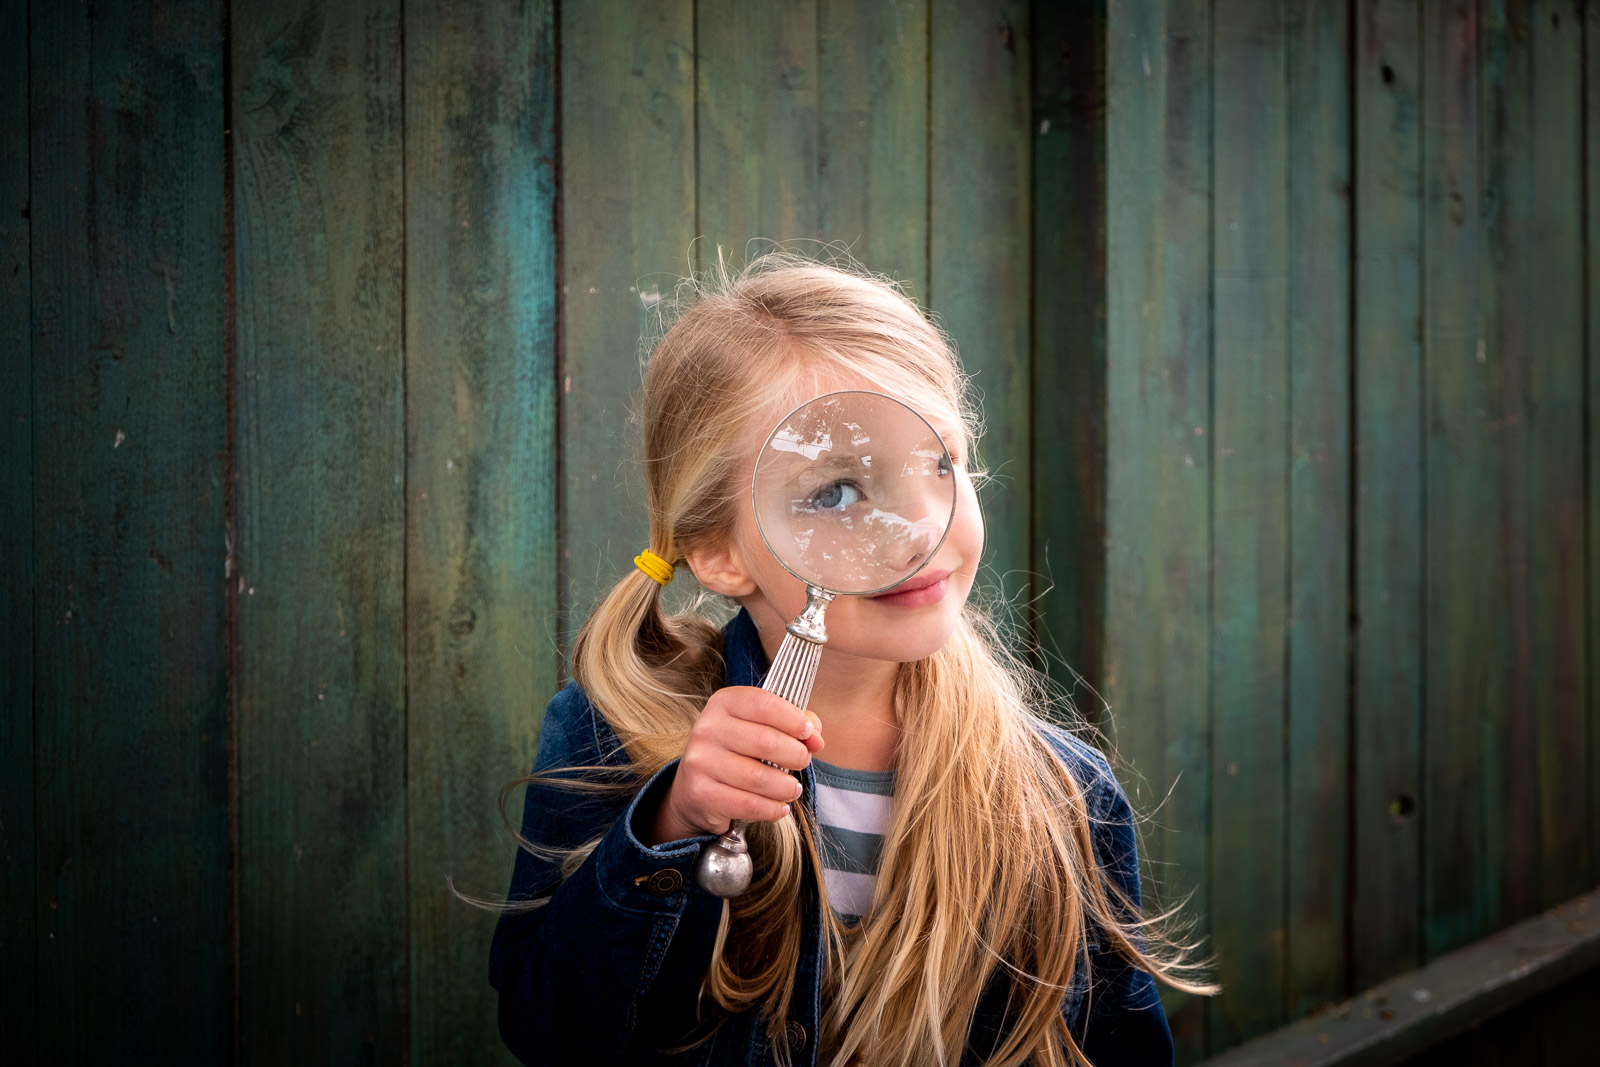 Unexpected Backdrop girl with magnifying glass in front of green fence by karlee hooper